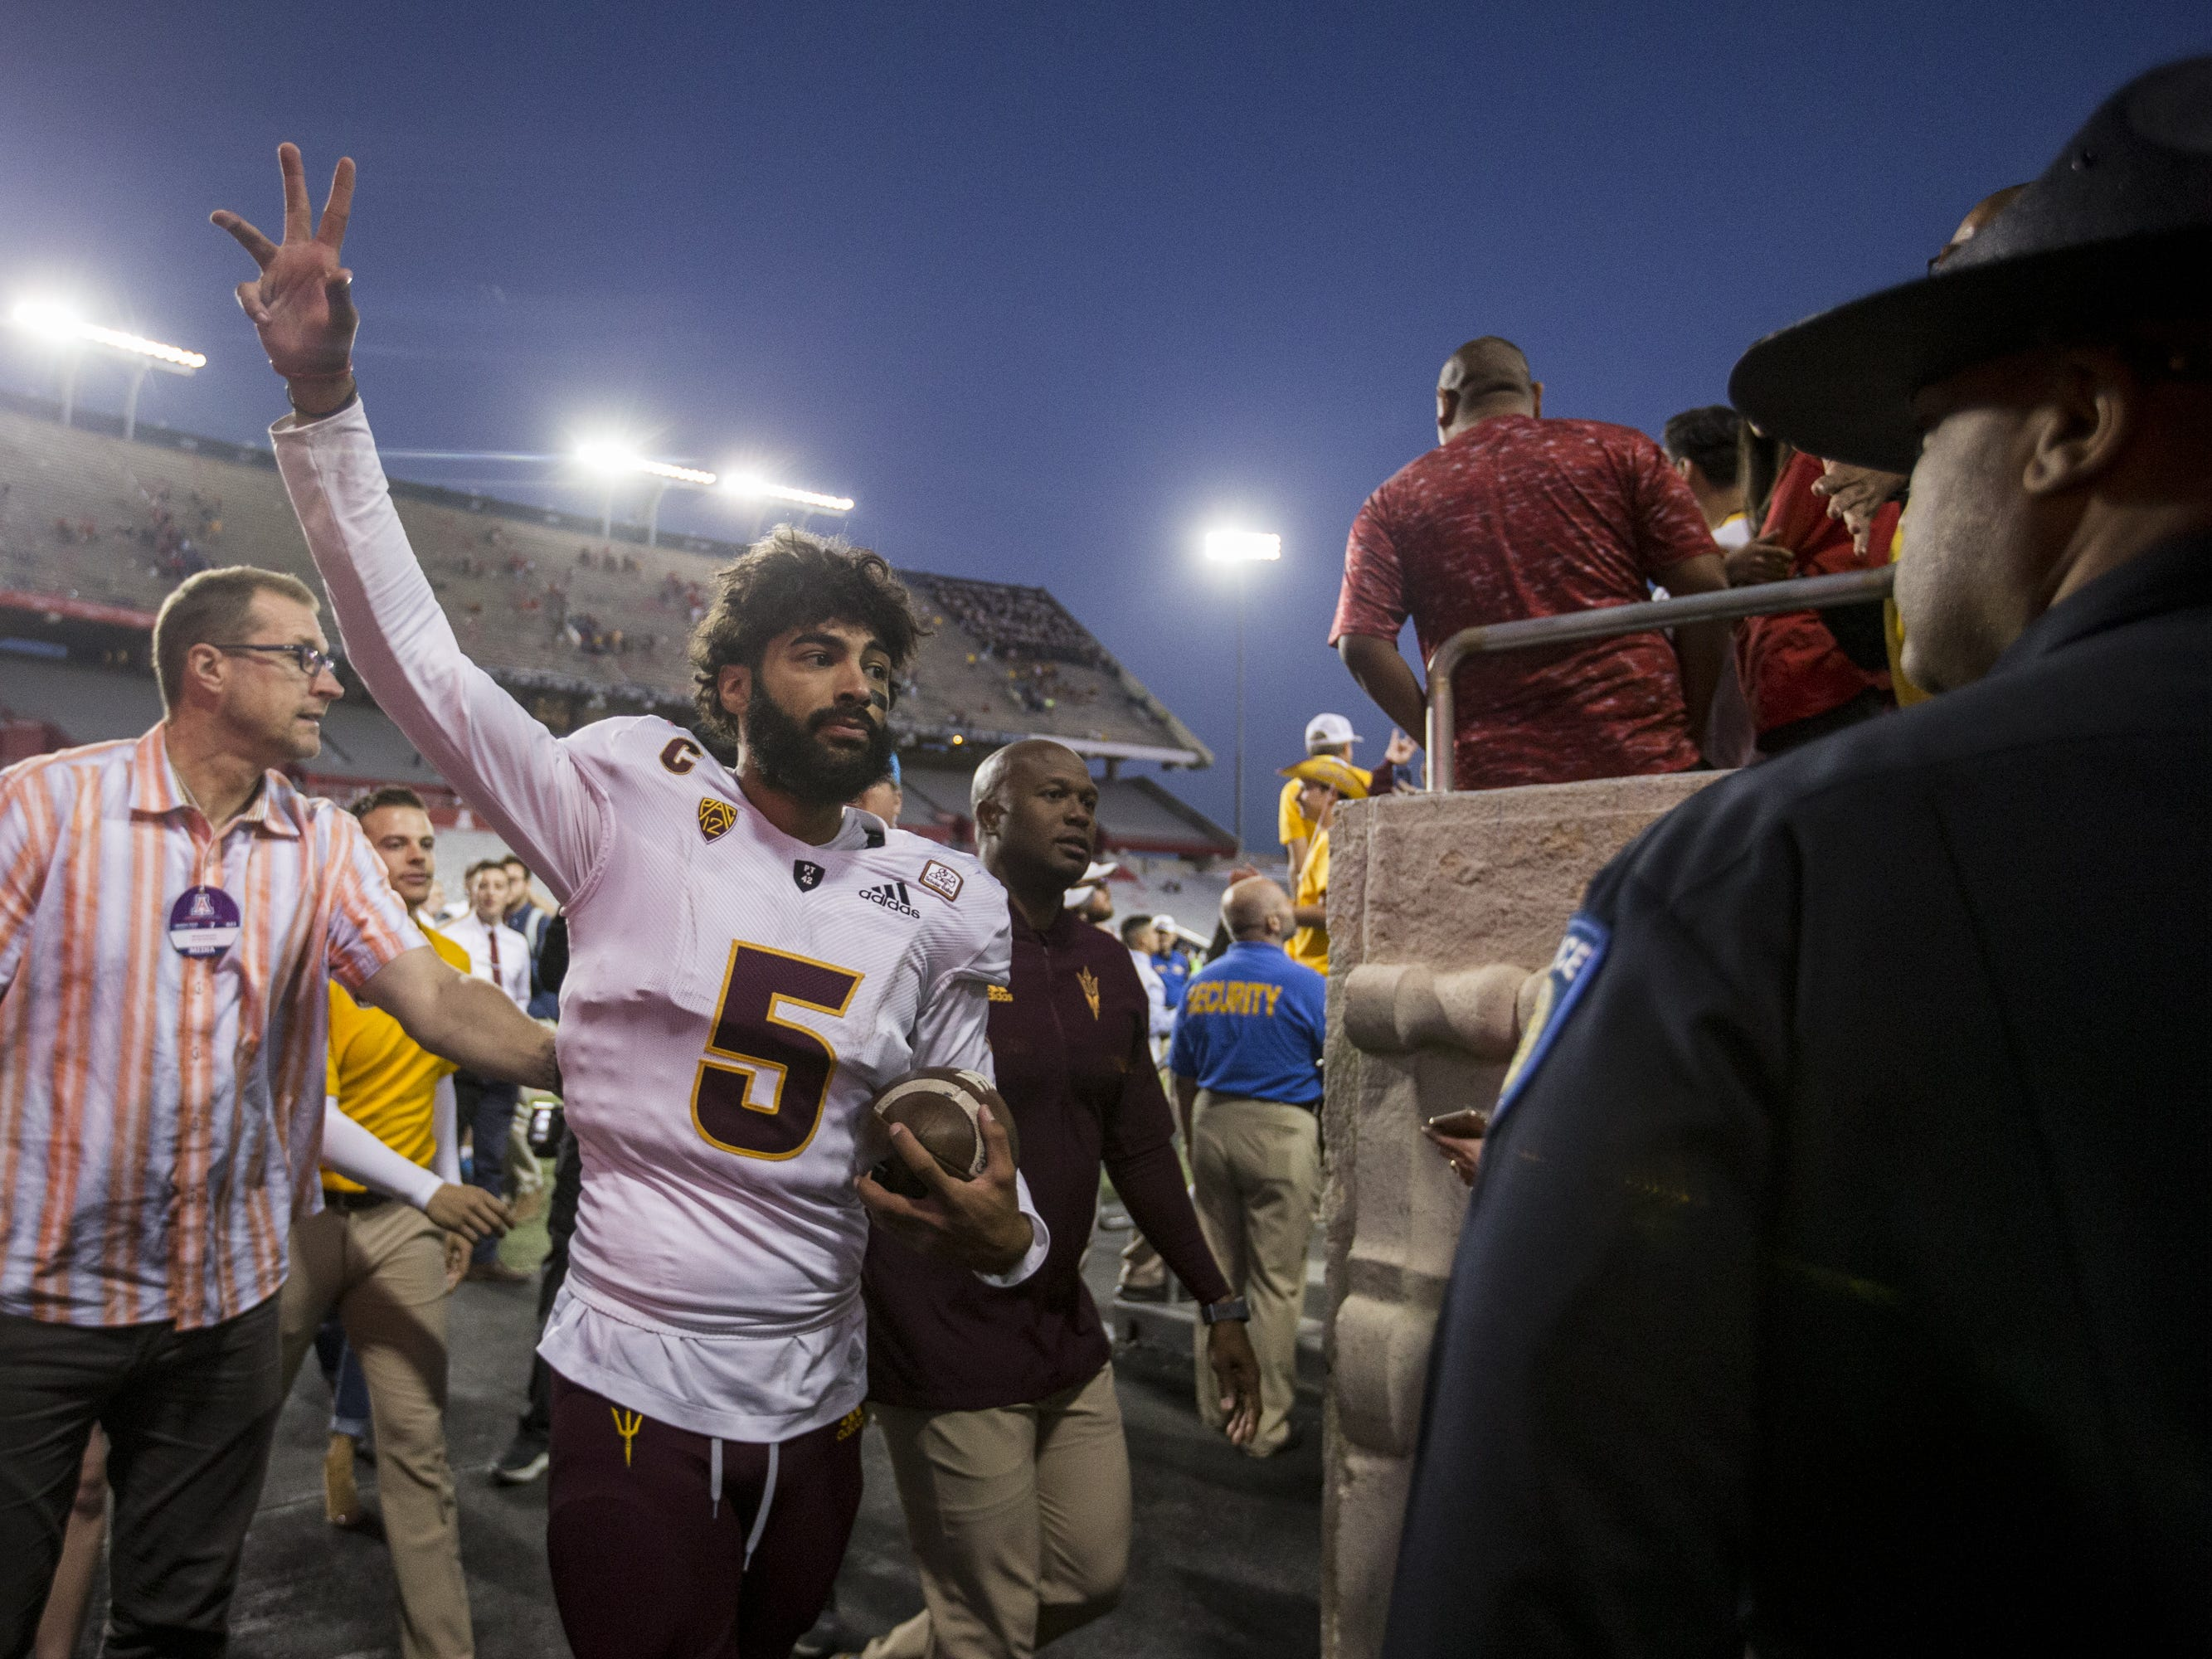 Arizona State's Manny Wilkins celebrates after defeating Arizona for the Territorial Cup on Saturday, Nov. 24, 2018, at Arizona Stadium in Tucson, Ariz. Arizona State won, 41-40.